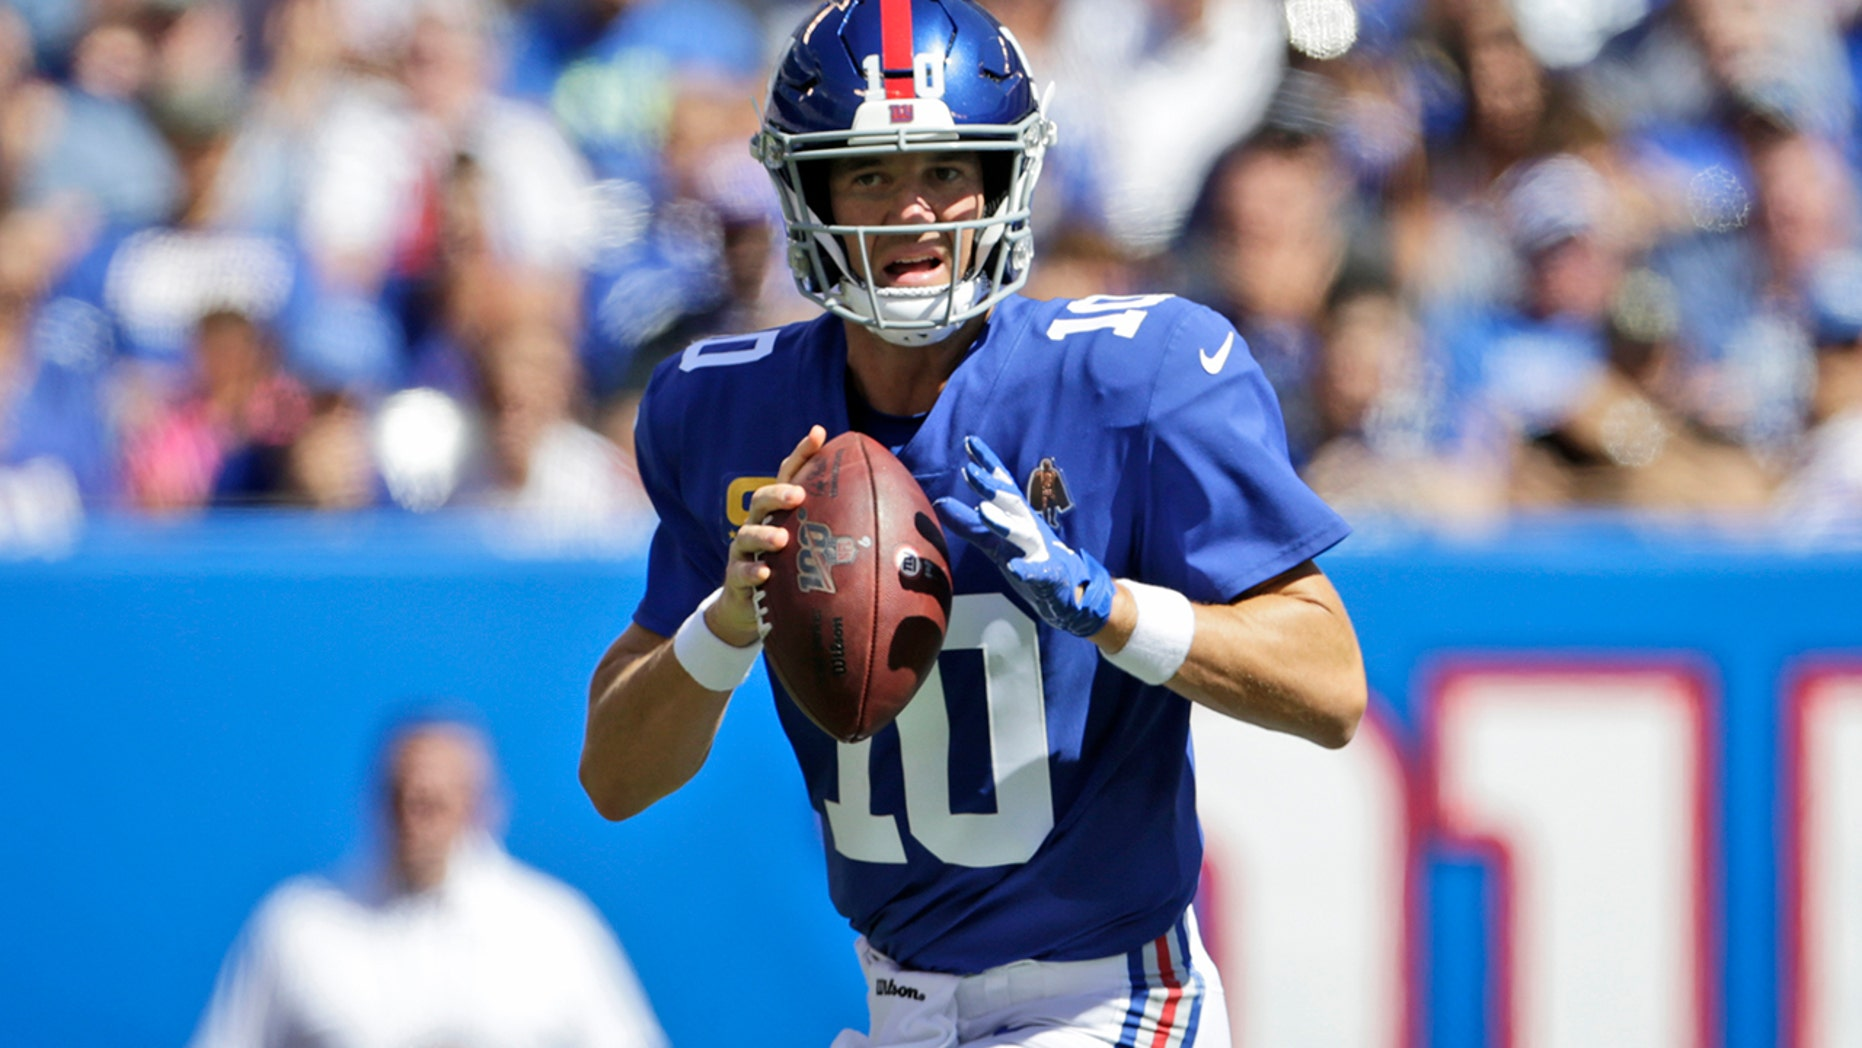 """New York Giants quarterback Eli Manning looks to throw during the first half of an NFL football game against the Buffalo Bills, Sunday, Sept. 1<div class=""""e3lan e3lan-in-post1""""><script async src=""""//pagead2.googlesyndication.com/pagead/js/adsbygoogle.js""""></script> <!-- Text_Display_Ad --> <ins class=""""adsbygoogle""""      style=""""display:block""""      data-ad-client=""""ca-pub-7542518979287585""""      data-ad-slot=""""2196042218""""      data-ad-format=""""auto""""></ins> <script> (adsbygoogle = window.adsbygoogle 